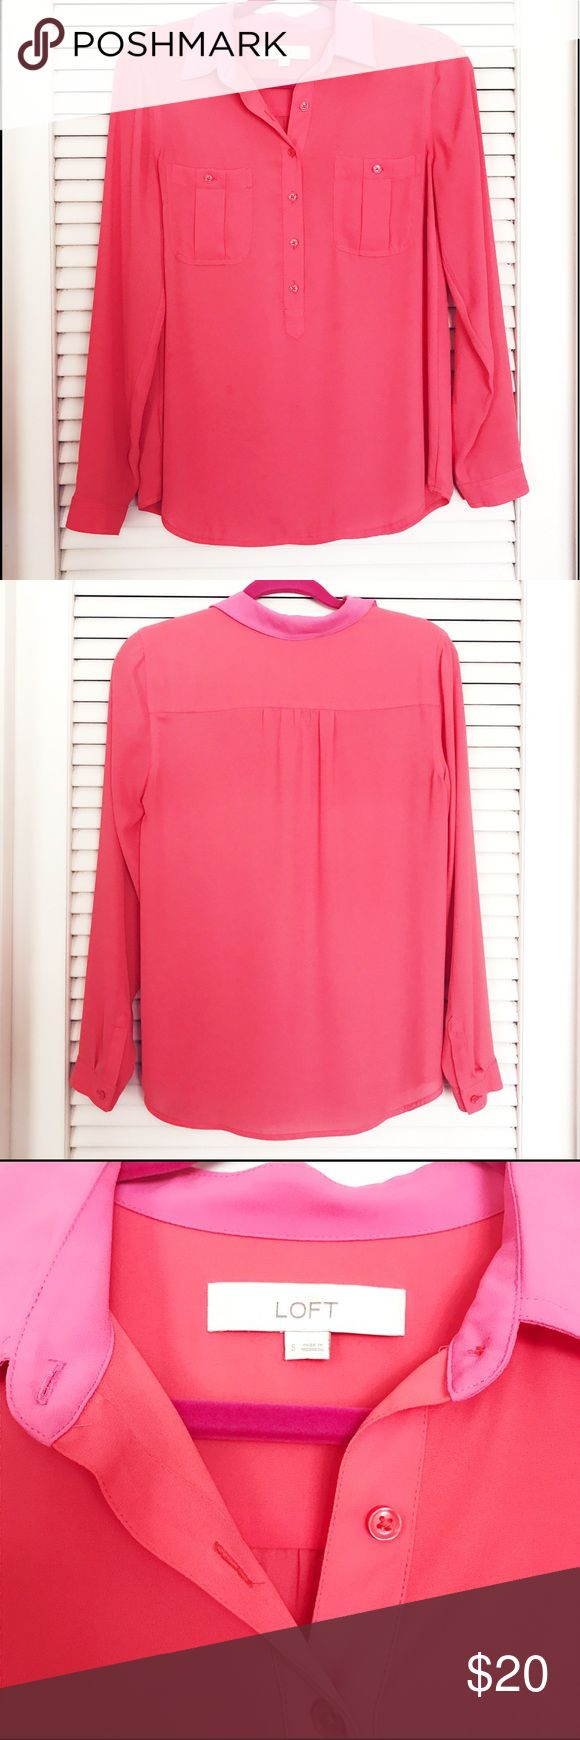 LOFT Coral Blouse Lightweight orange button up blouse with hot pink collar - like brand new condition! Great for the office or casual with jeans! LOFT Tops Button Down Shirts